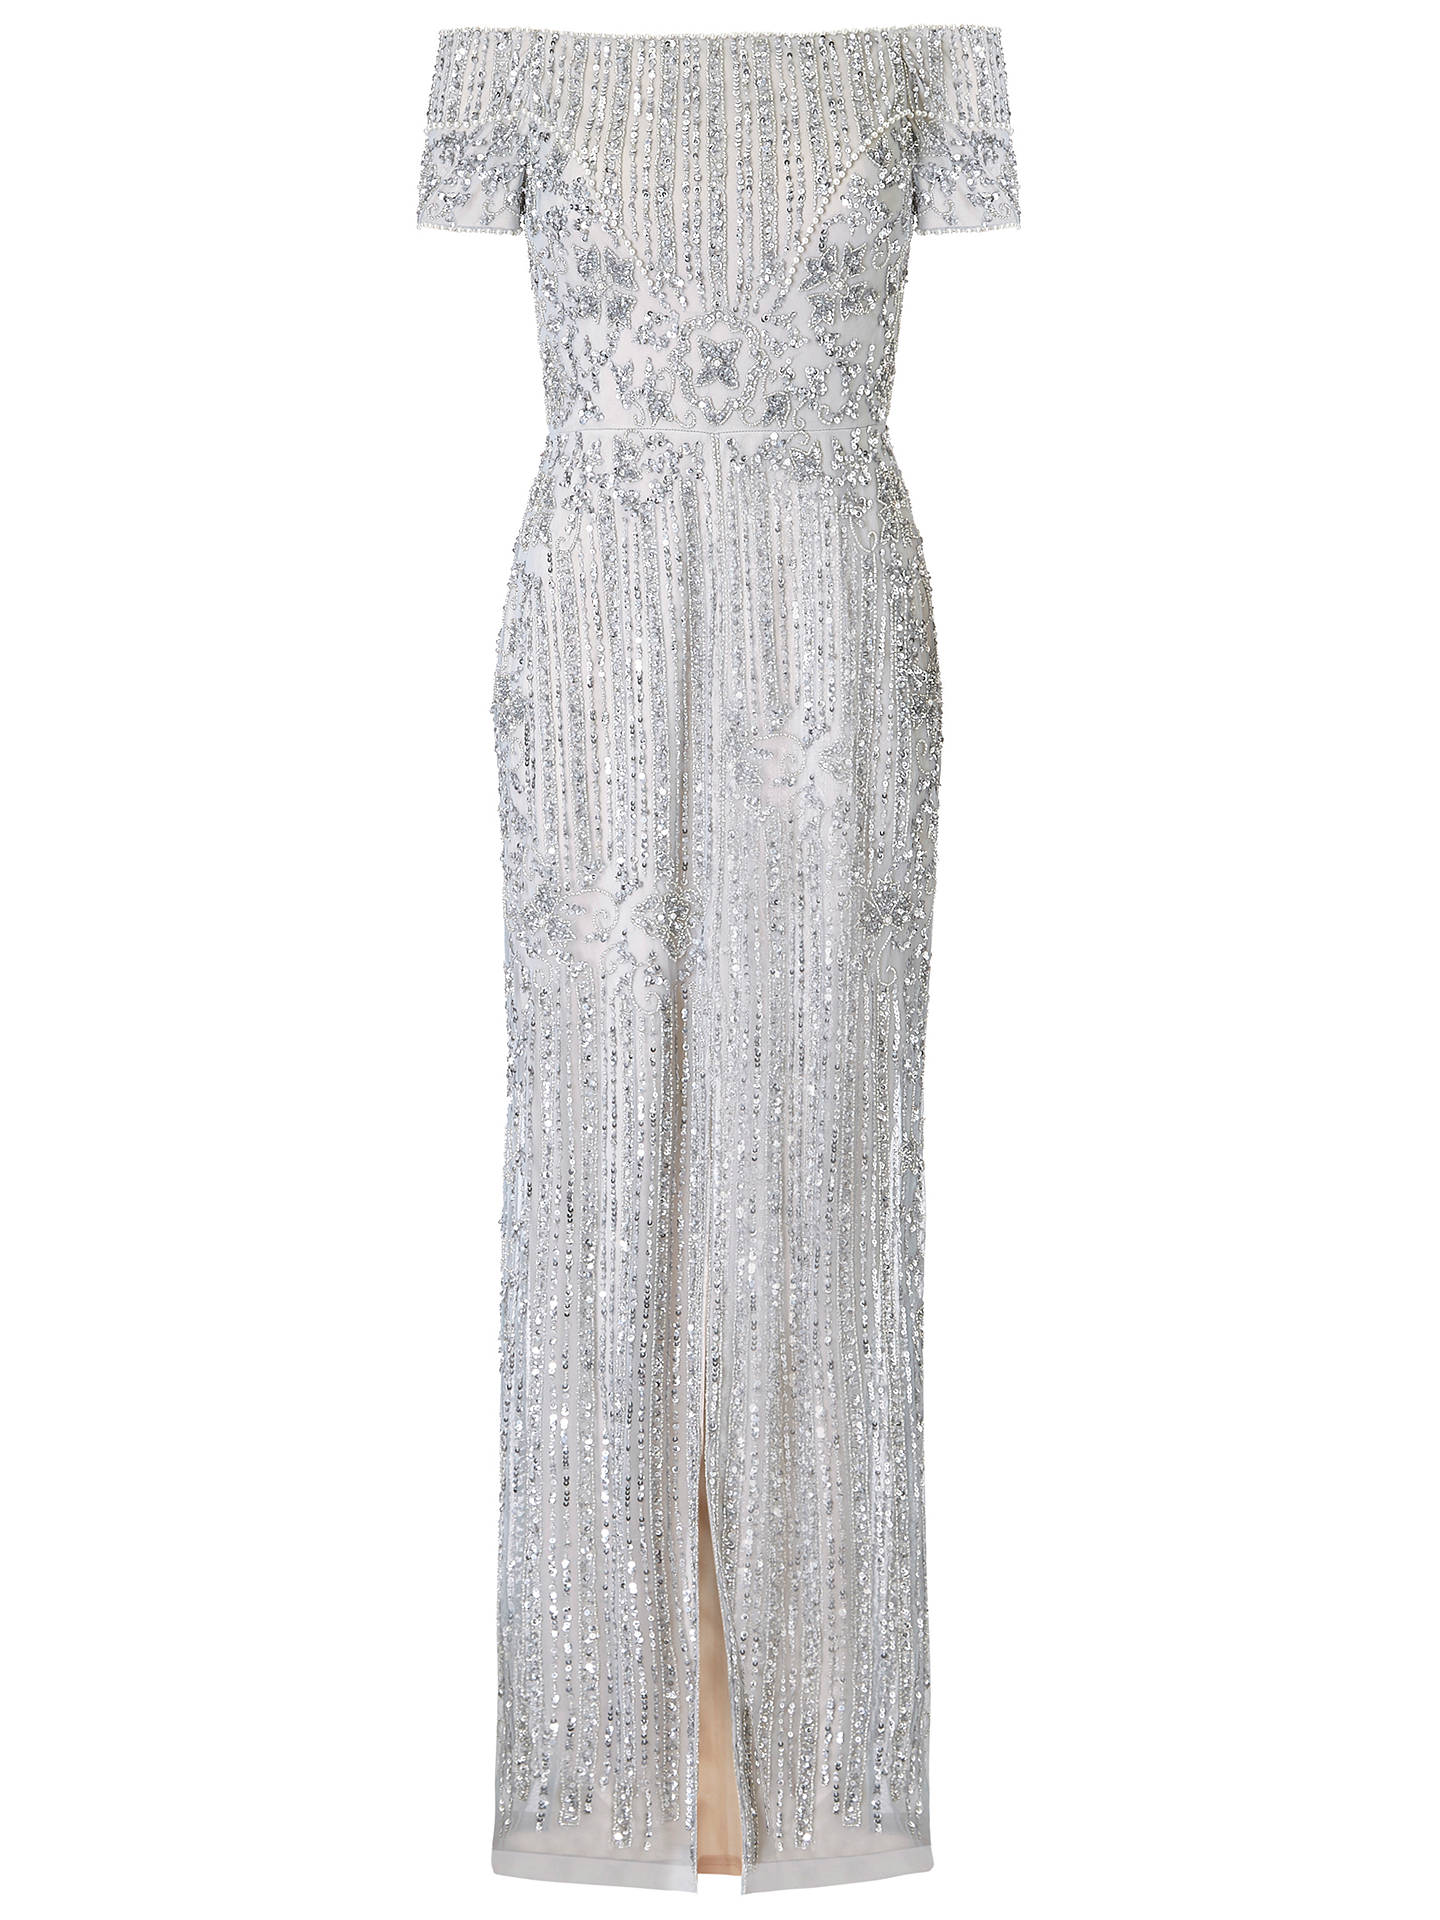 BuyAdrianna Papell Petite Heather Dress, Silver, 6 Online at johnlewis.com